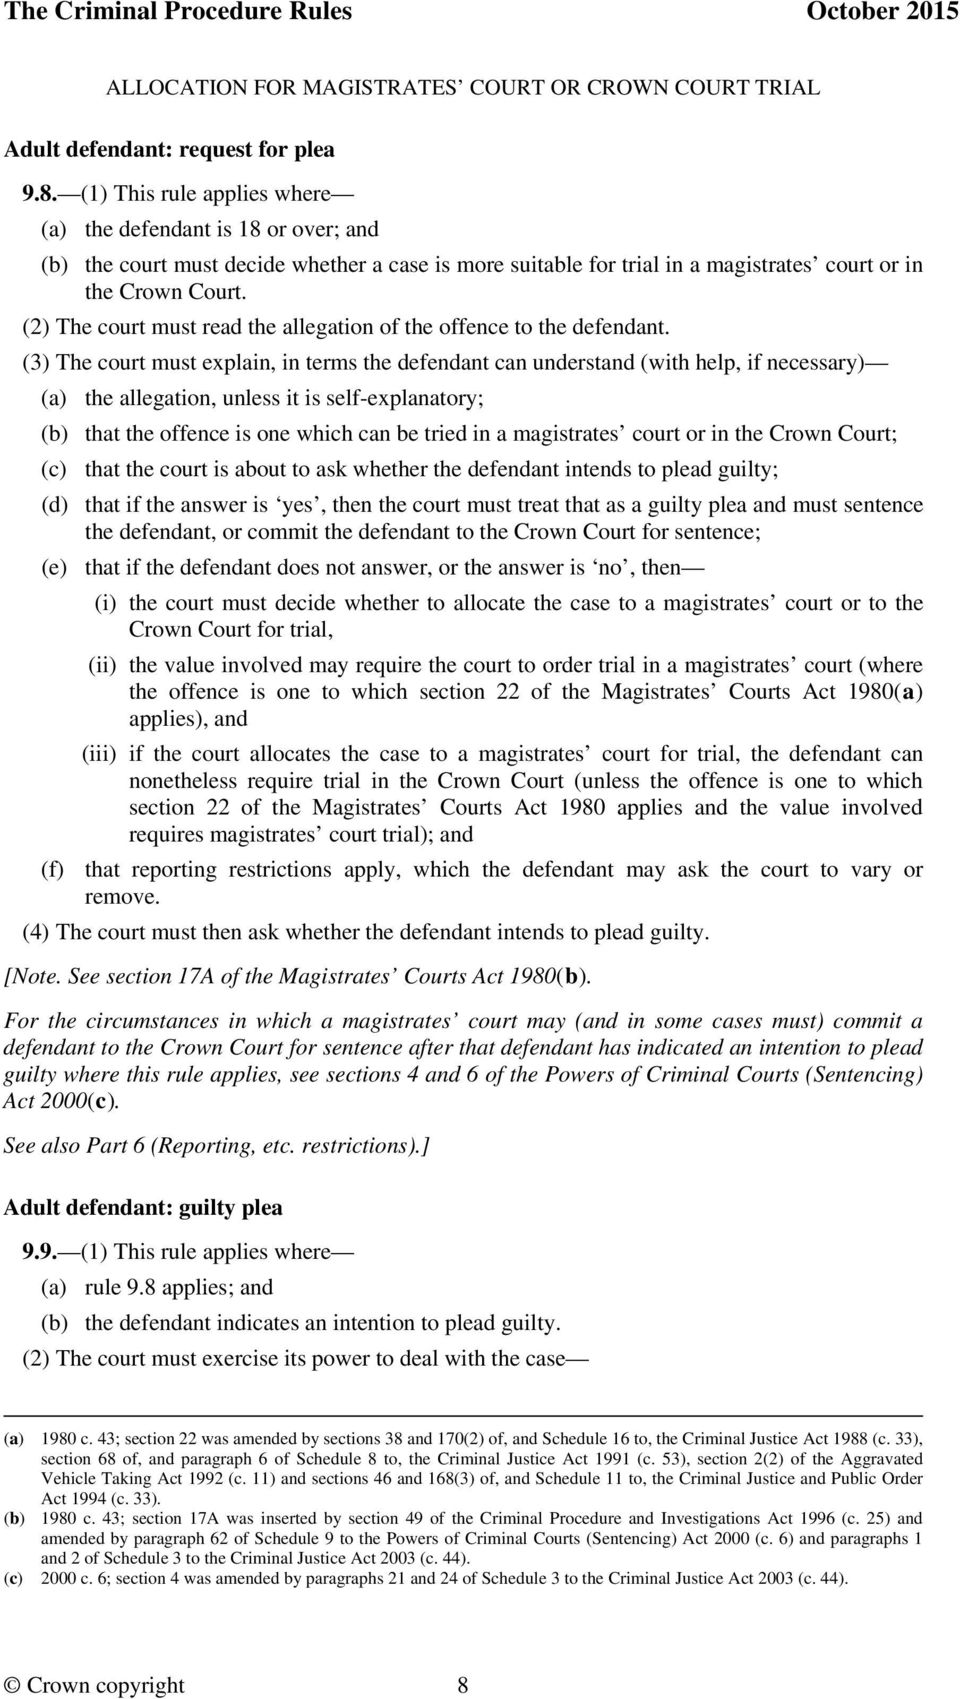 (2) The court must read the allegation of the offence to the defendant.